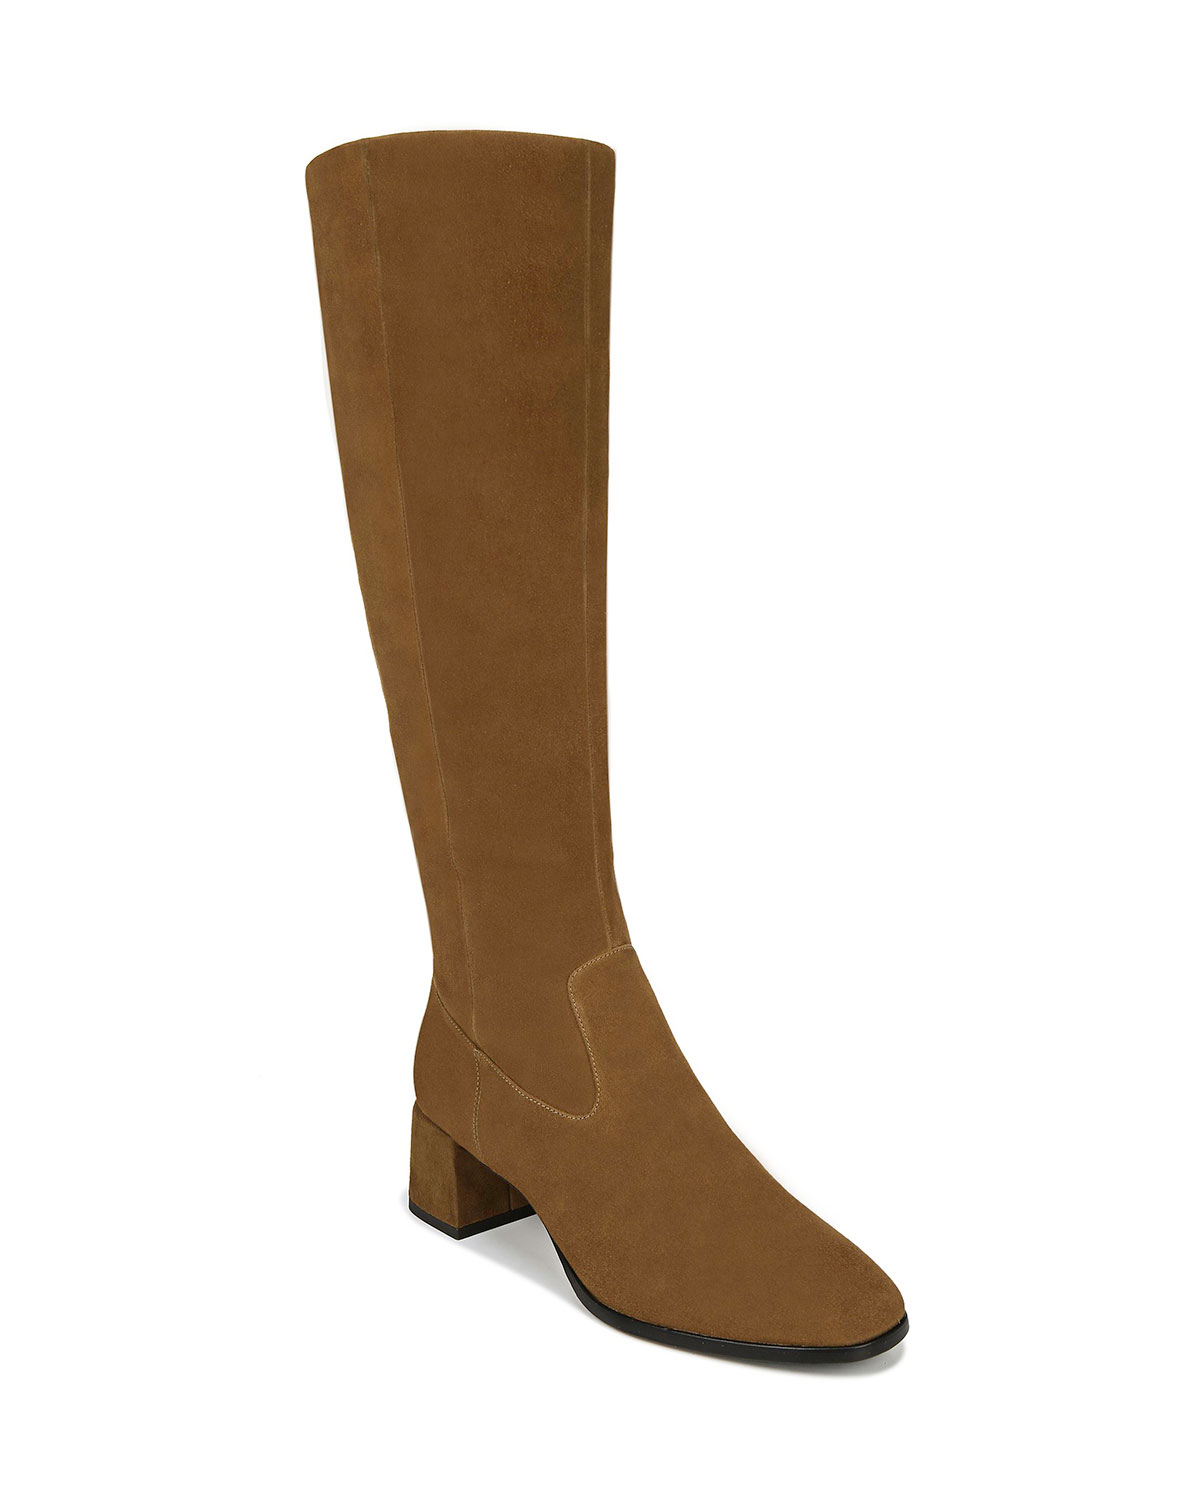 Via Spiga Boots SANORA TO-THE-KNEE BOOTS